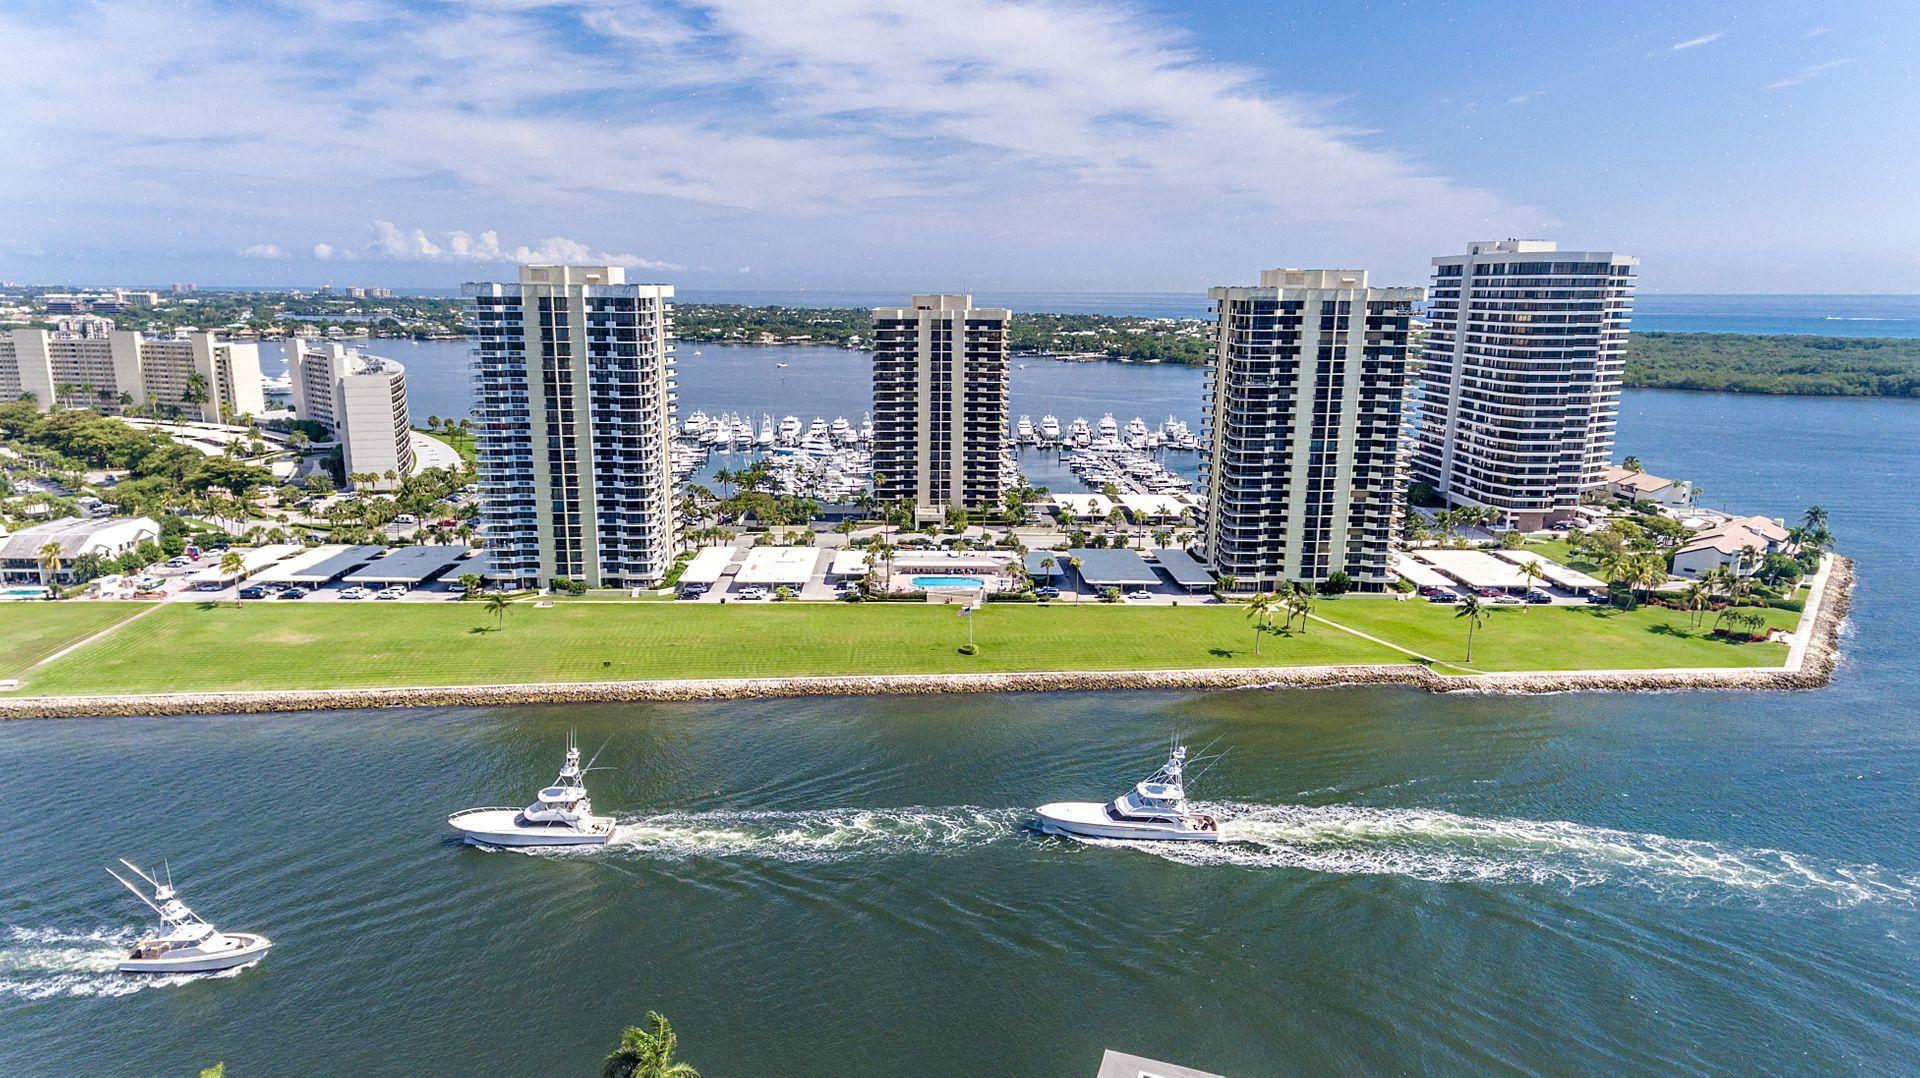 OLD PORT COVE REAL ESTATE